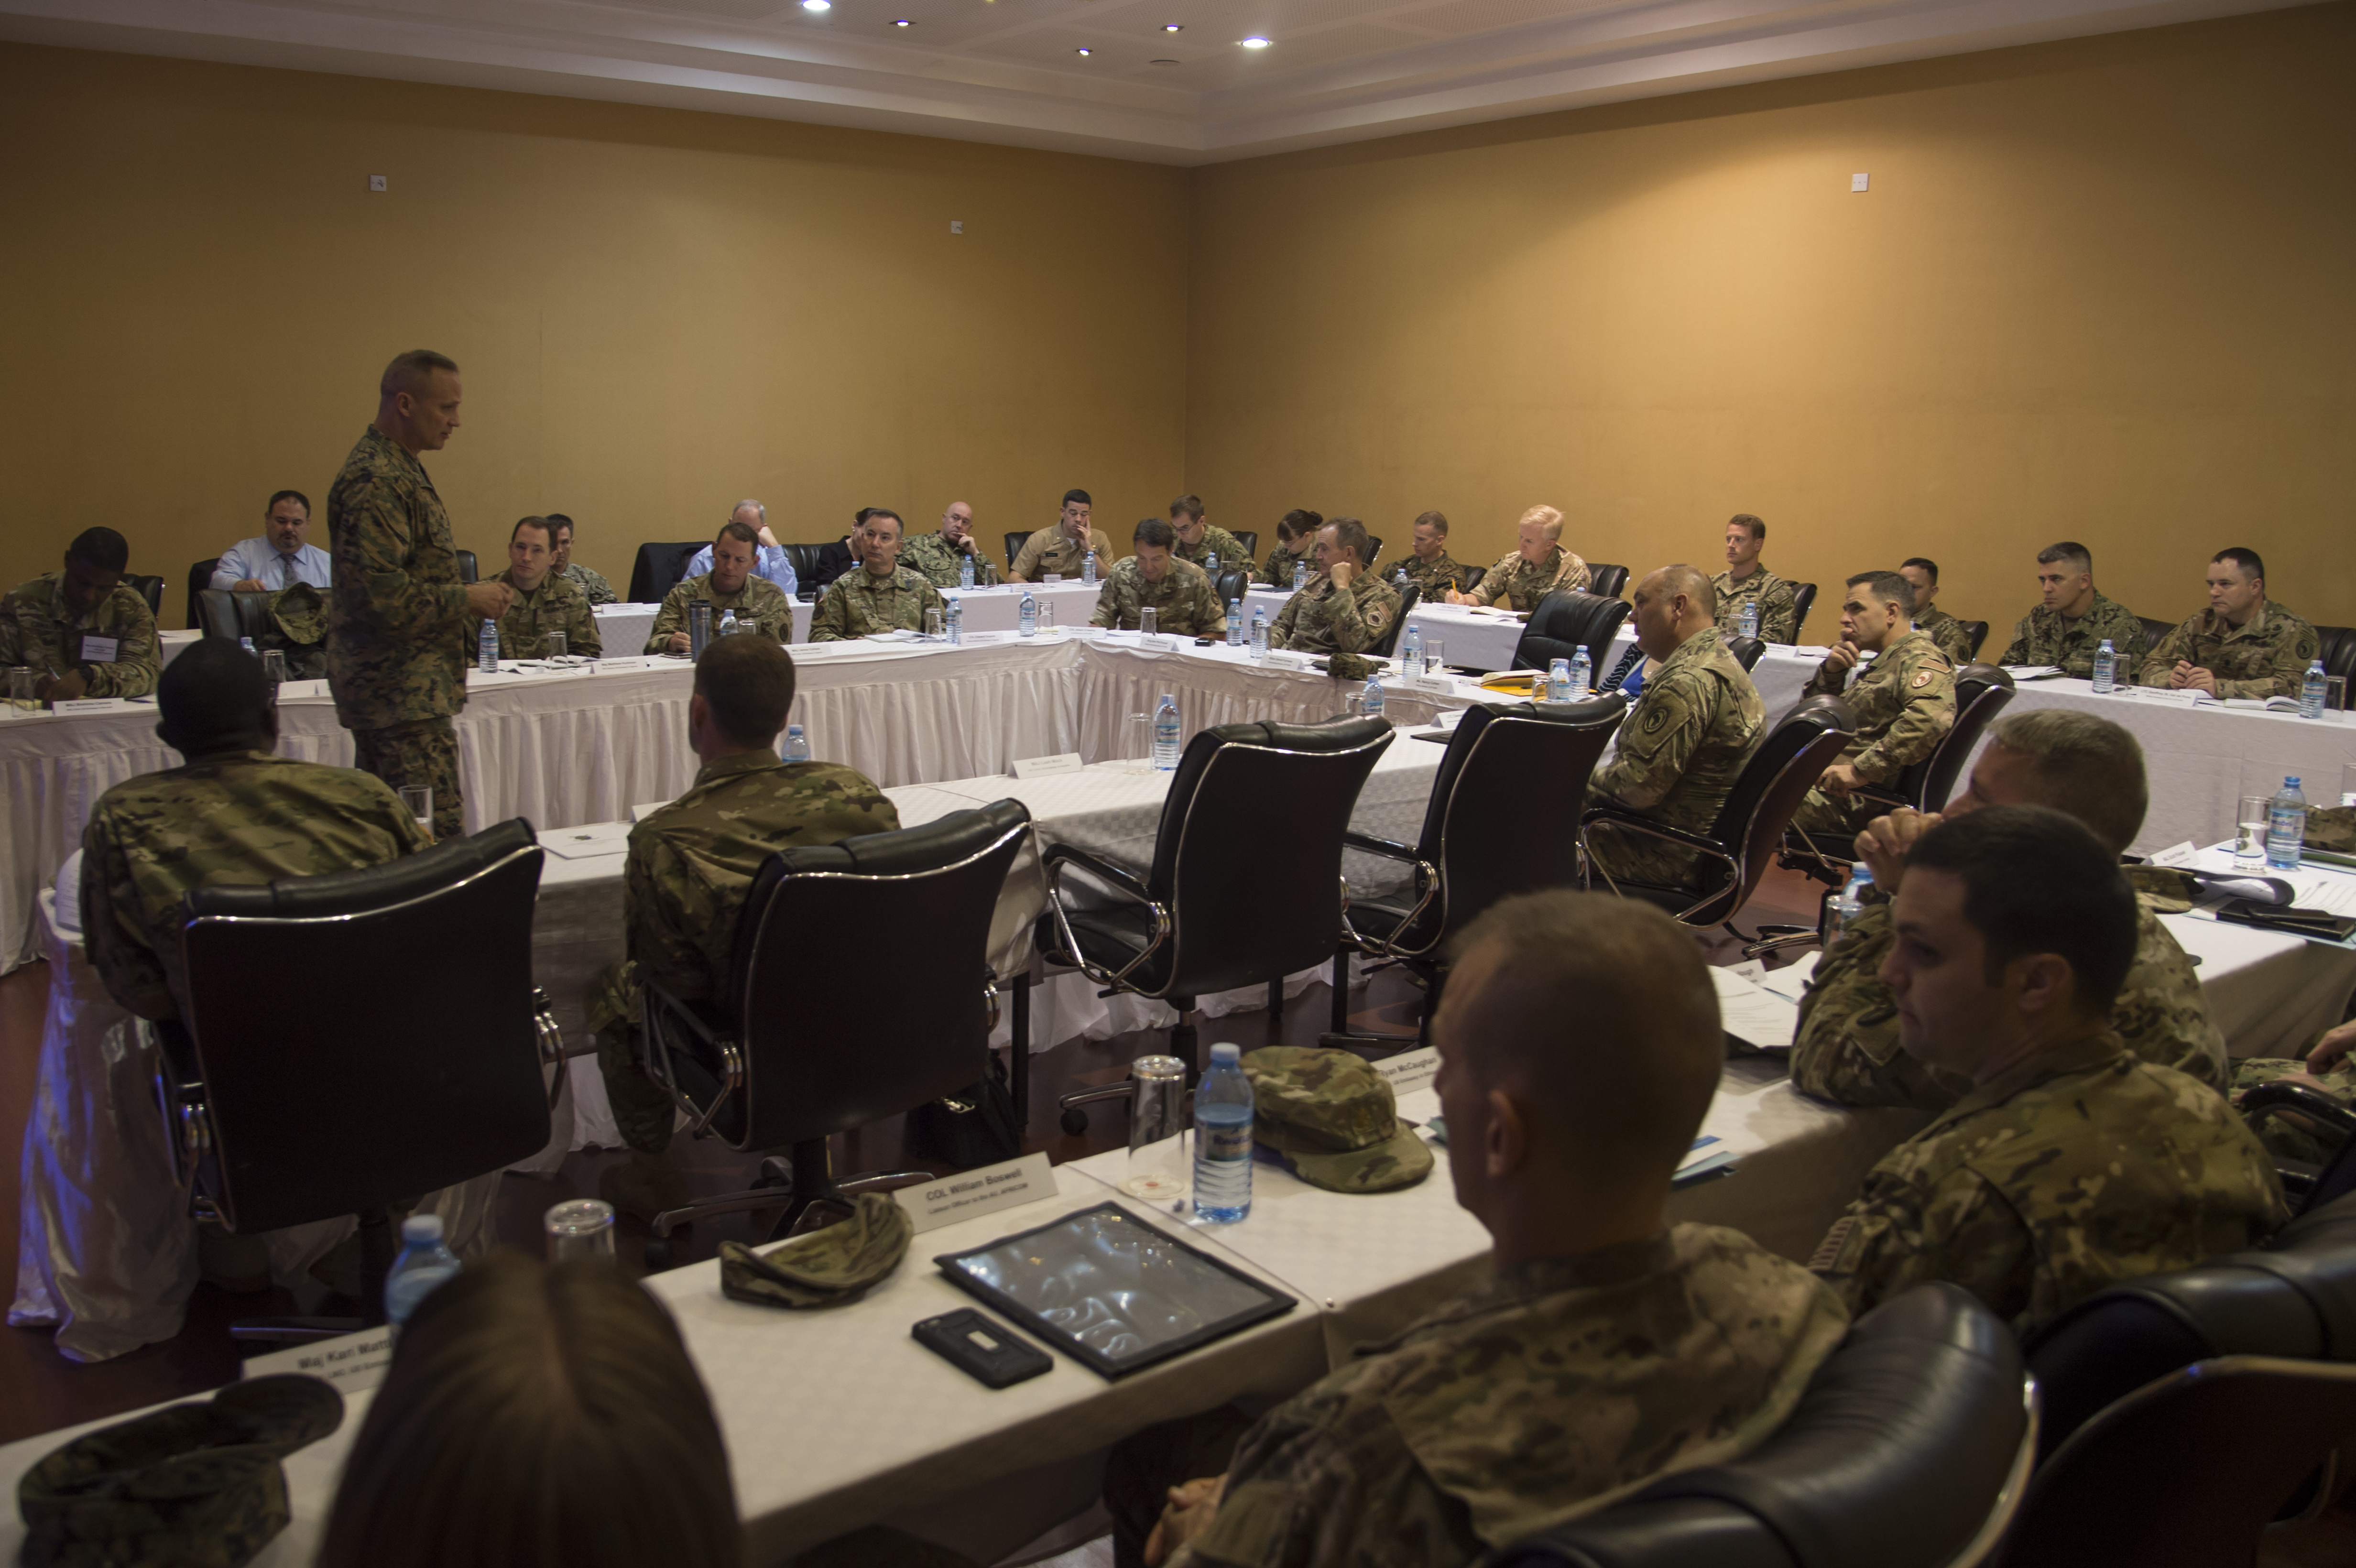 Combined Joint Task Force-Horn of Africa Commanding General, U.S. Marine Corps Brig. Gen. David Furness, speaks to attendees at the 2017 East African Senior Defense Official/Defense Attaché Conference in Kampala, Uganda, to discuss regional issues and address threat mitigation options to counter improvised explosive devices on Oct. 17, 2017. Subject matter experts from a variety of government agencies discussed military partnership opportunities to enhance security and stability throughout East Africa. (U.S. Air National Guard photo by Tech. Sgt. Joe Harwood)